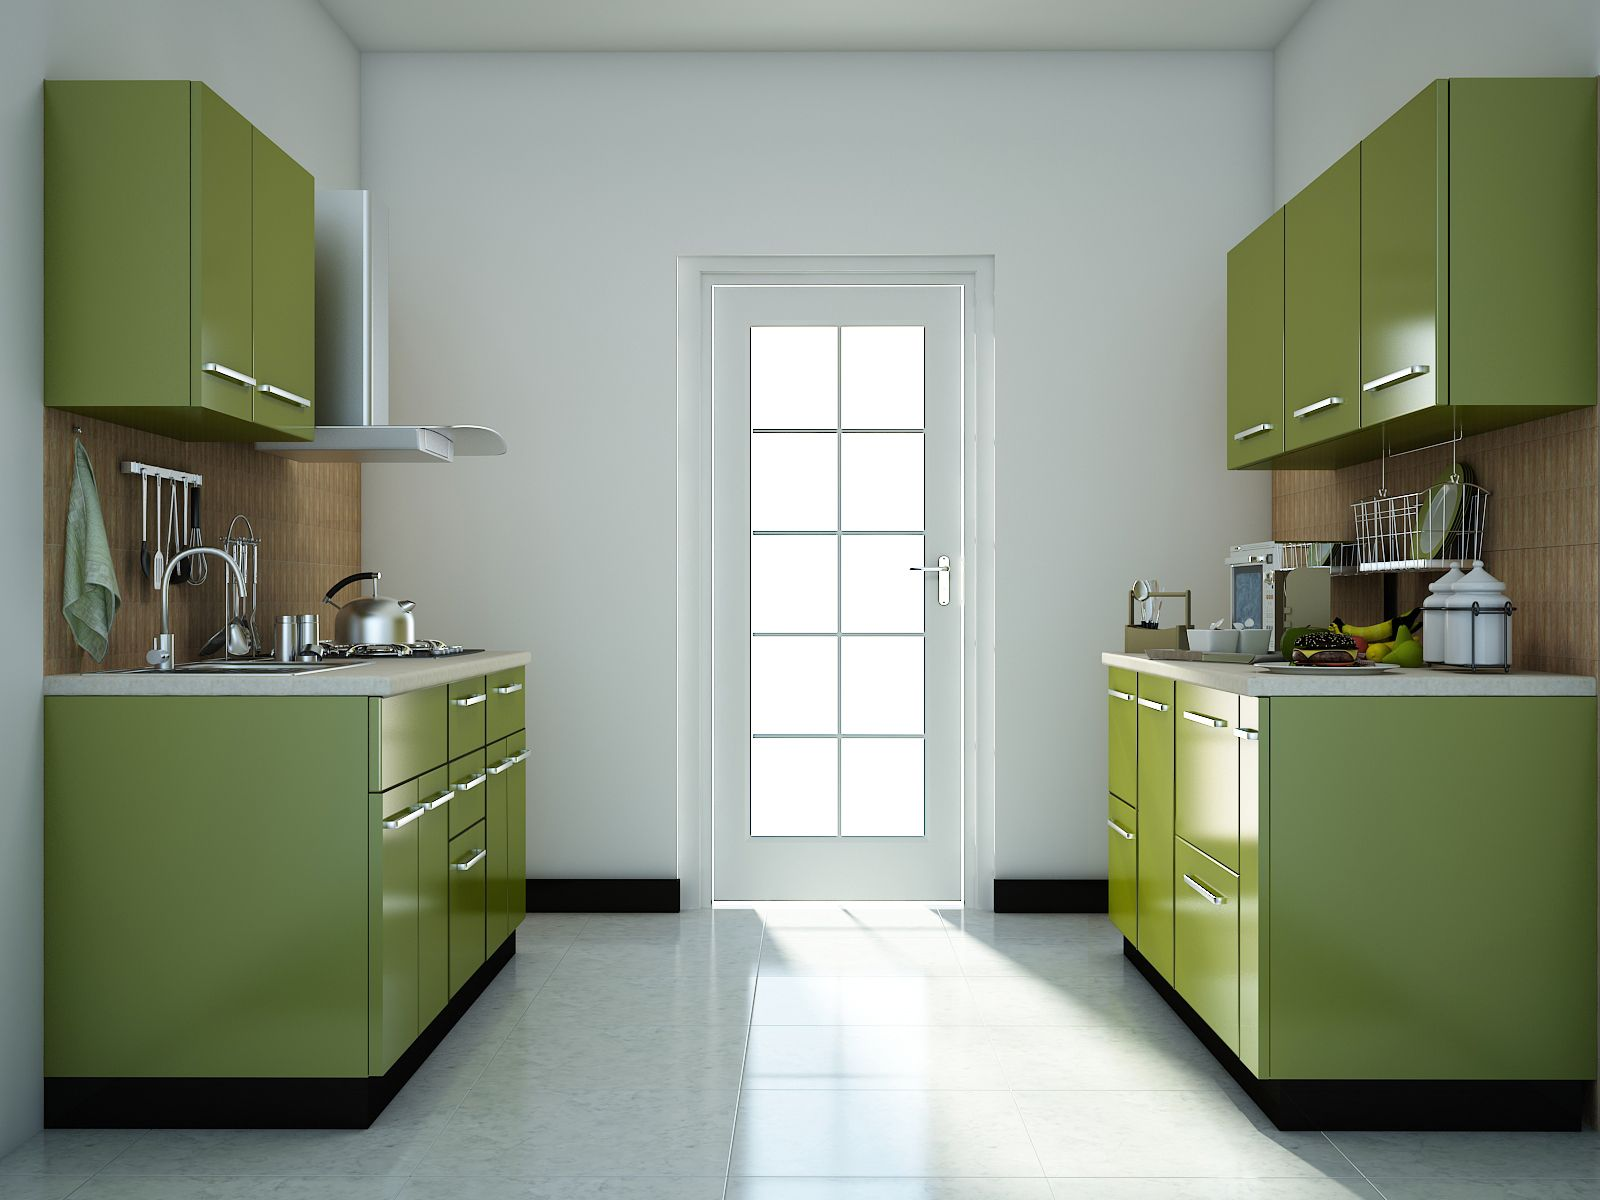 Green modular kitchen designs | Kitchen remodel layout ...